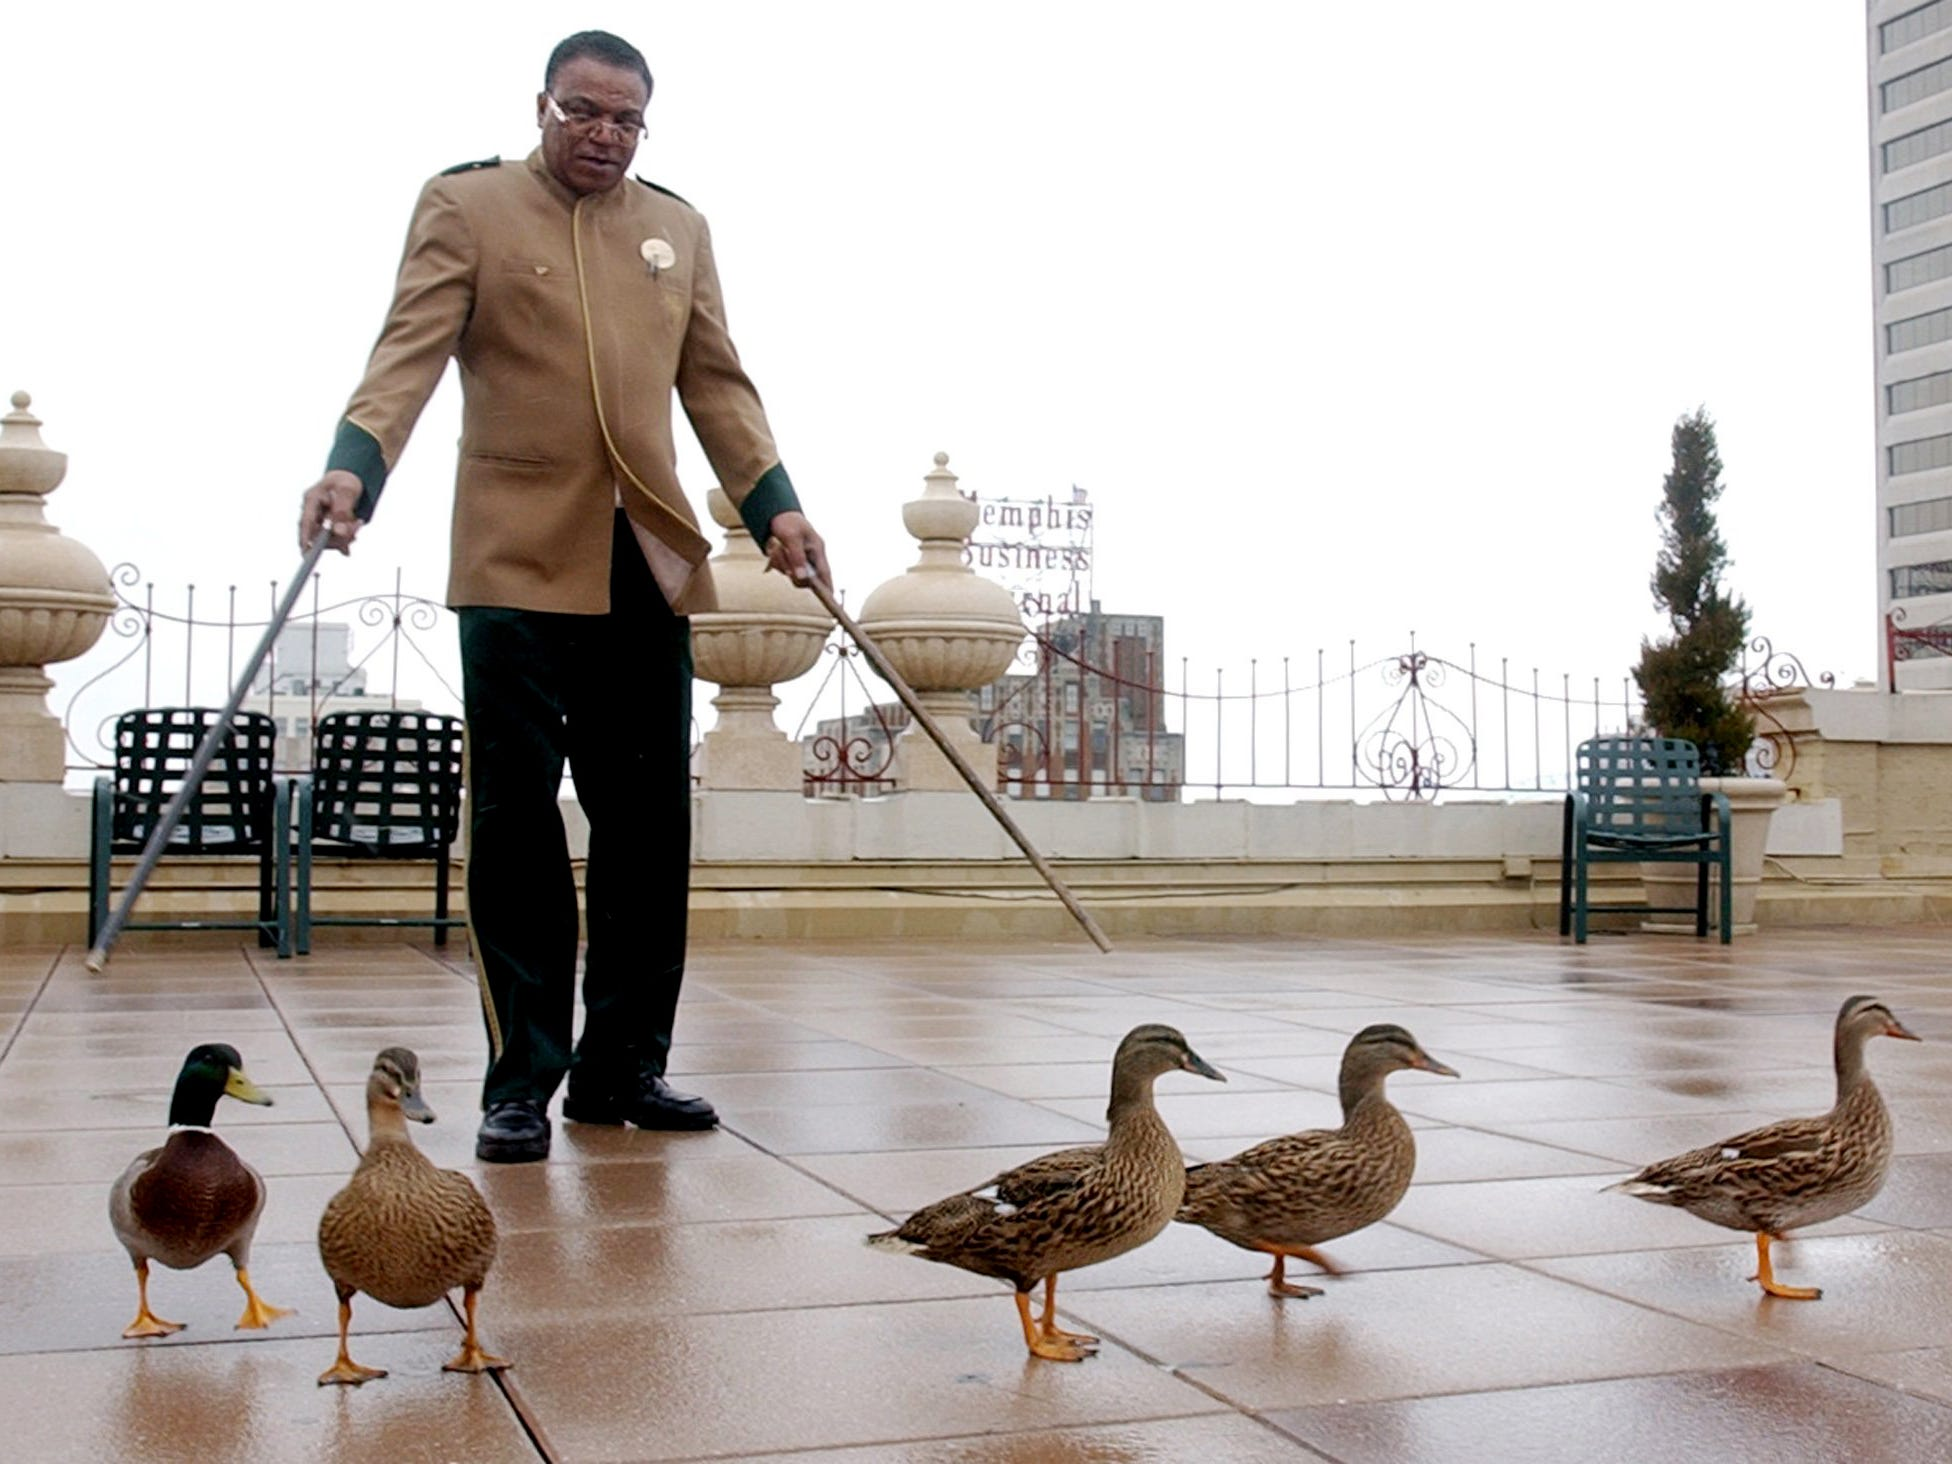 Charles Blevins escorts the Peabody ducks from their duck palace to the lobby of the Peabody Hotel on Jan. 16, 2003.